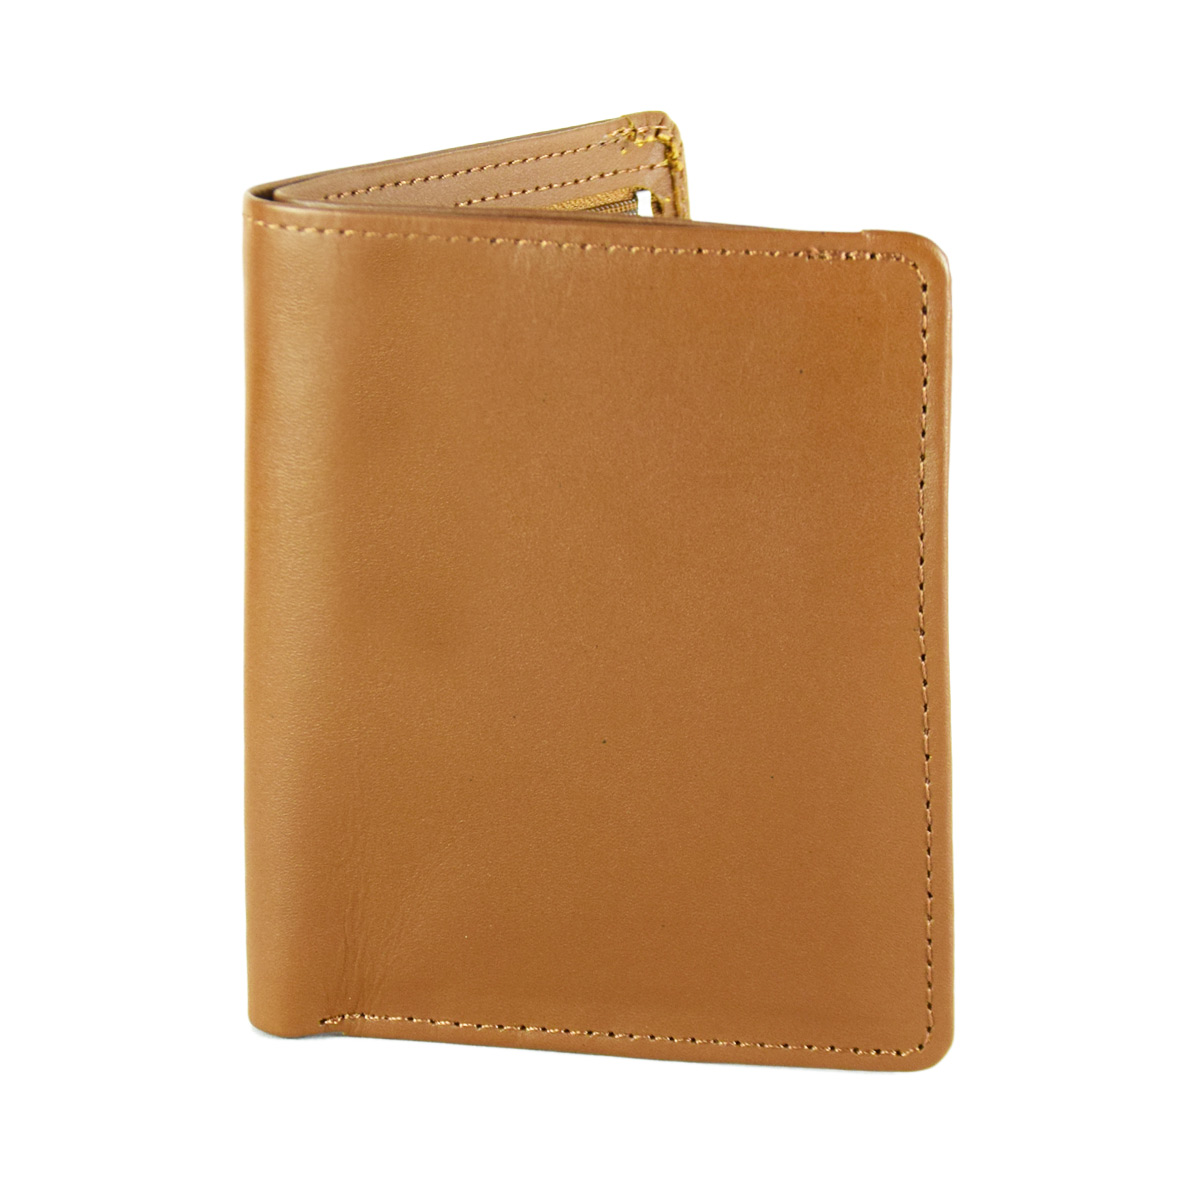 BROWN WALLET WITH SPECIAL COINS POCKET